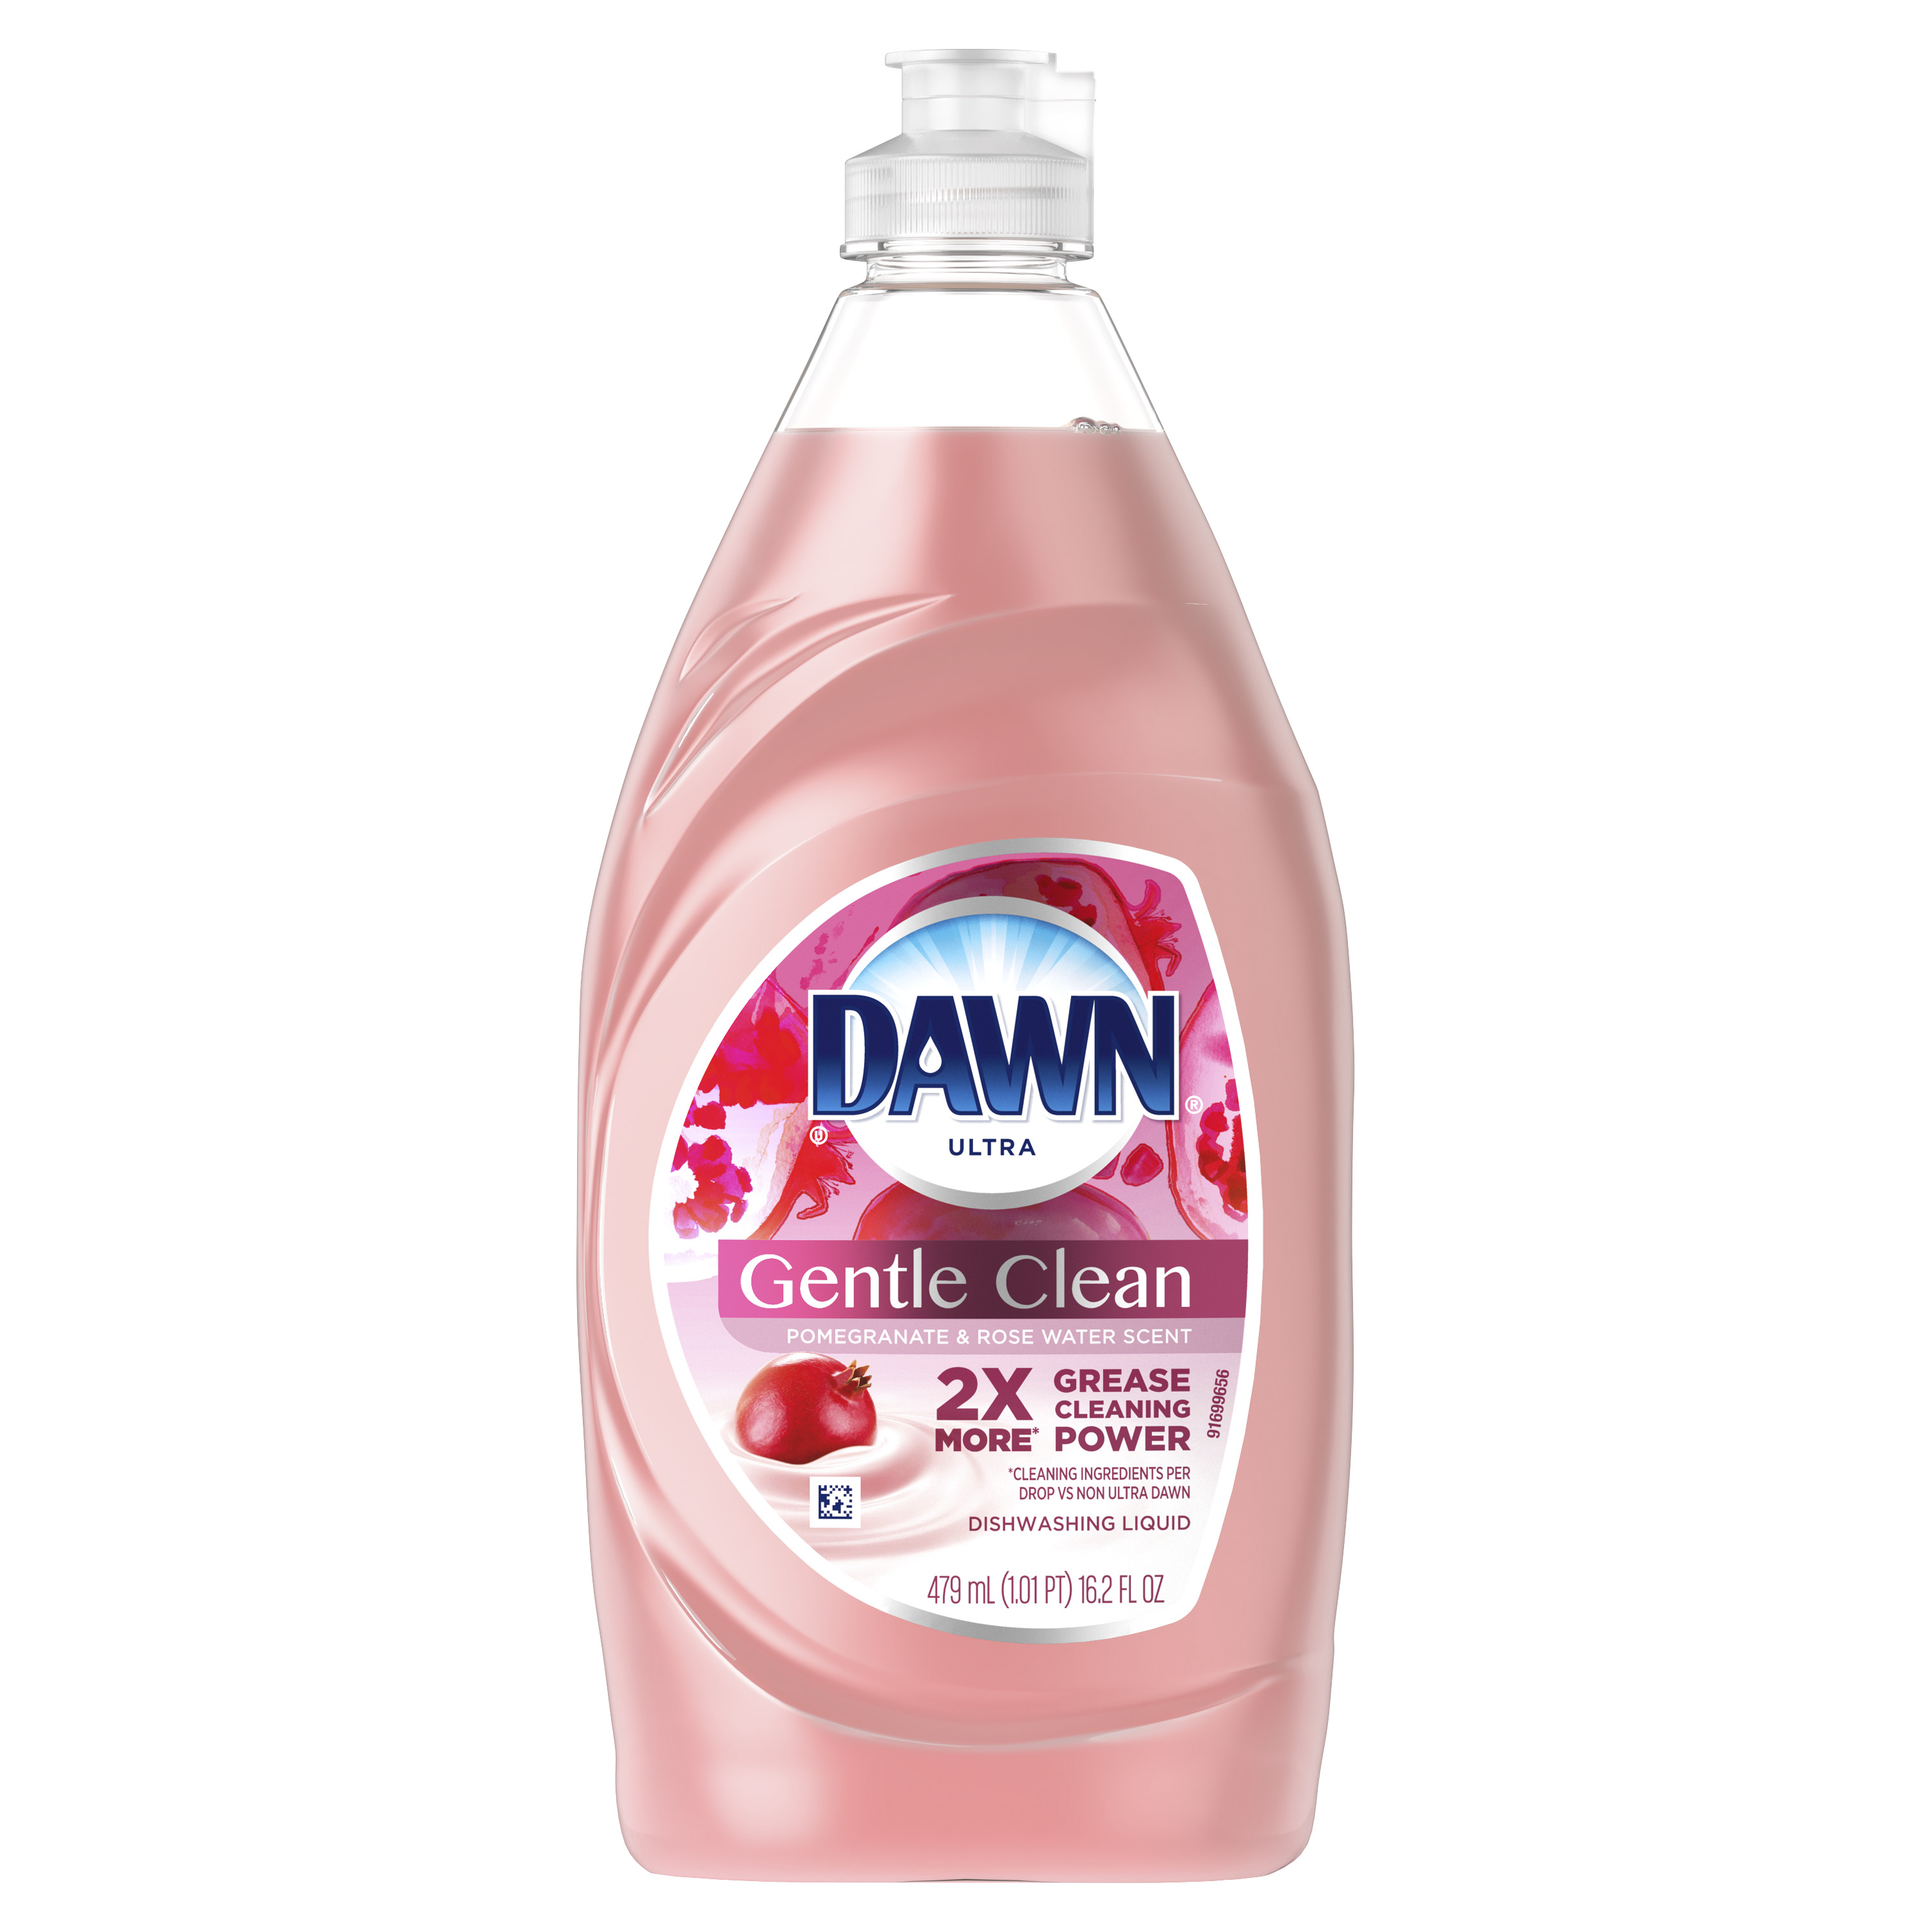 Dawn Ultra Gentle Clean Dishwashing Liquid Dish Soap, Pomegranate & Rose Water Scent, 16.2 fl oz